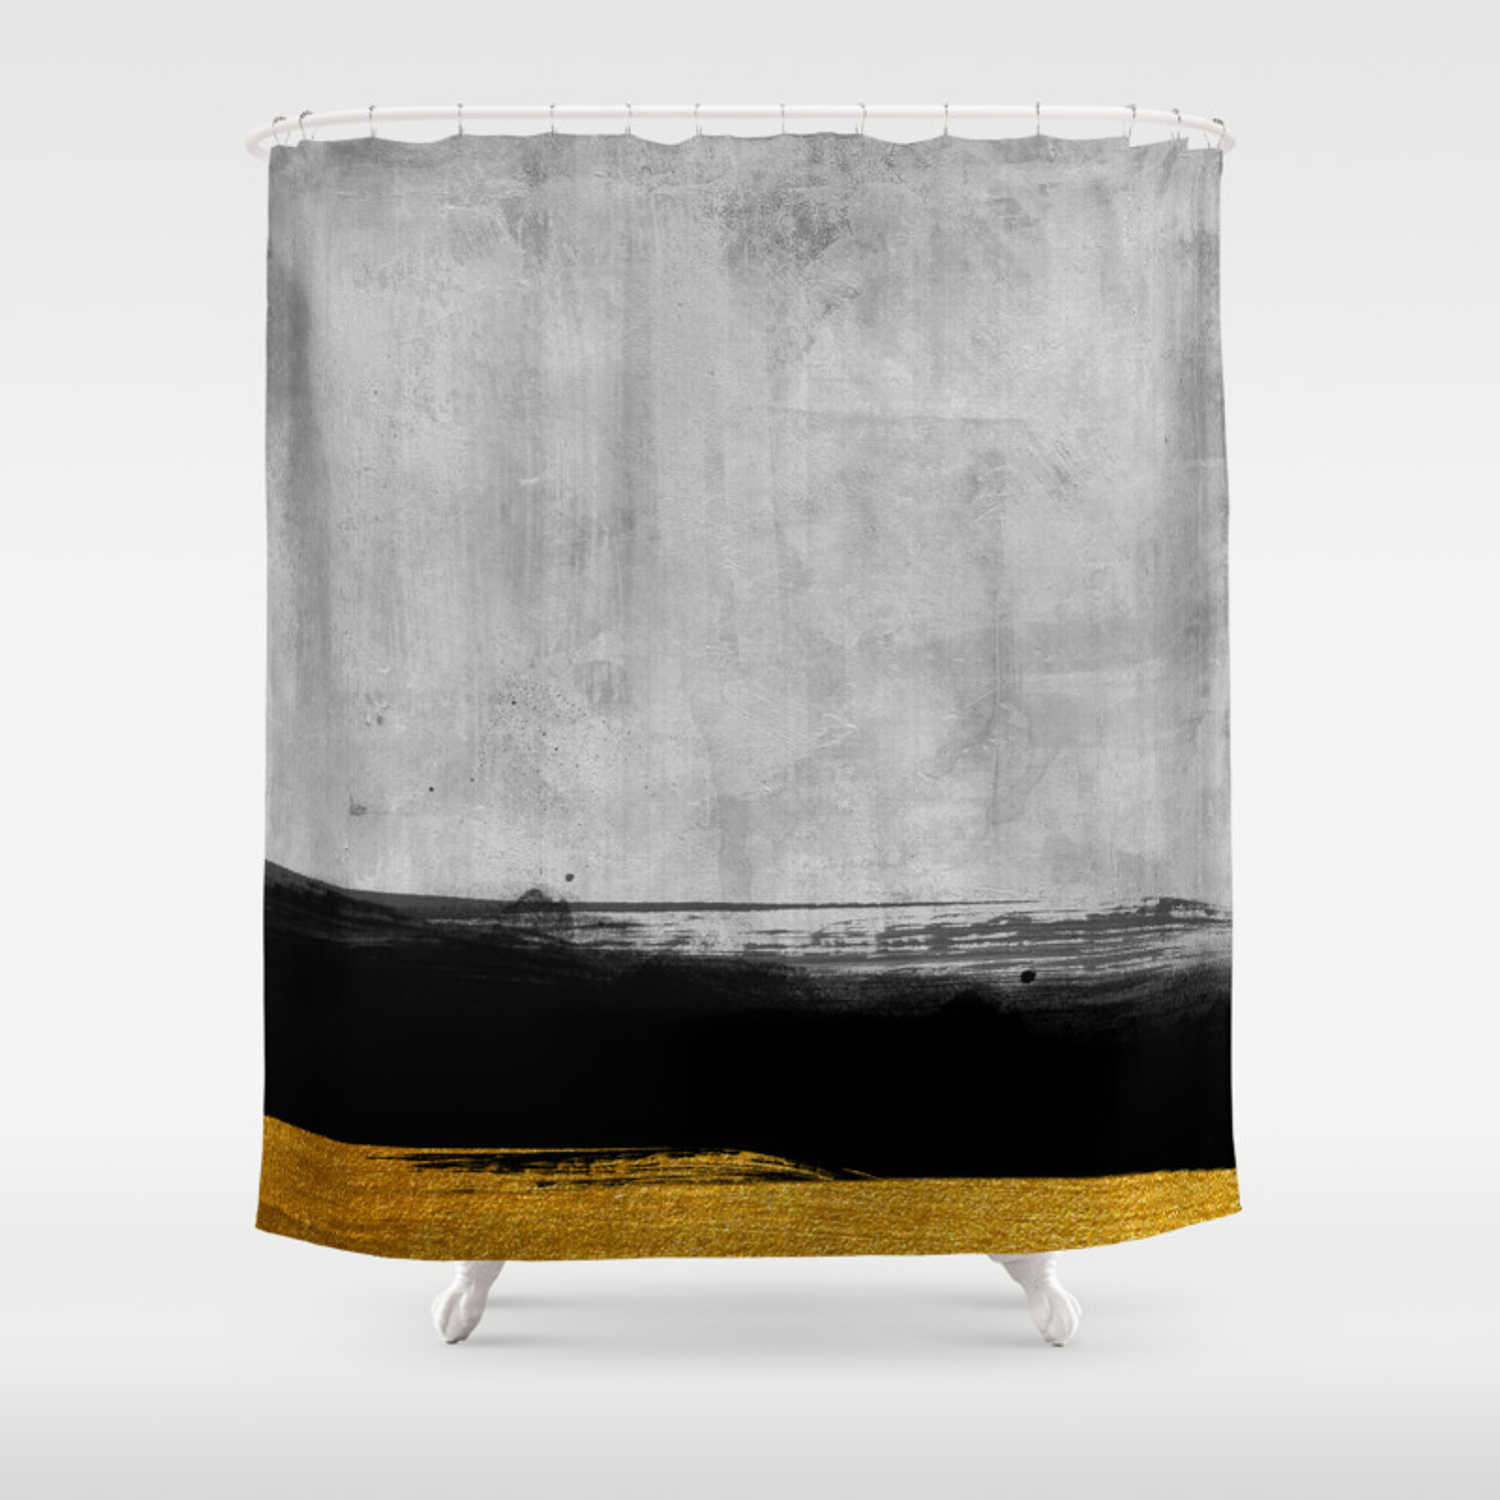 Black And Gold Grunge Stripes On Modern Grey Concrete Abstract Backround I Stripe Striped Shower Curtain